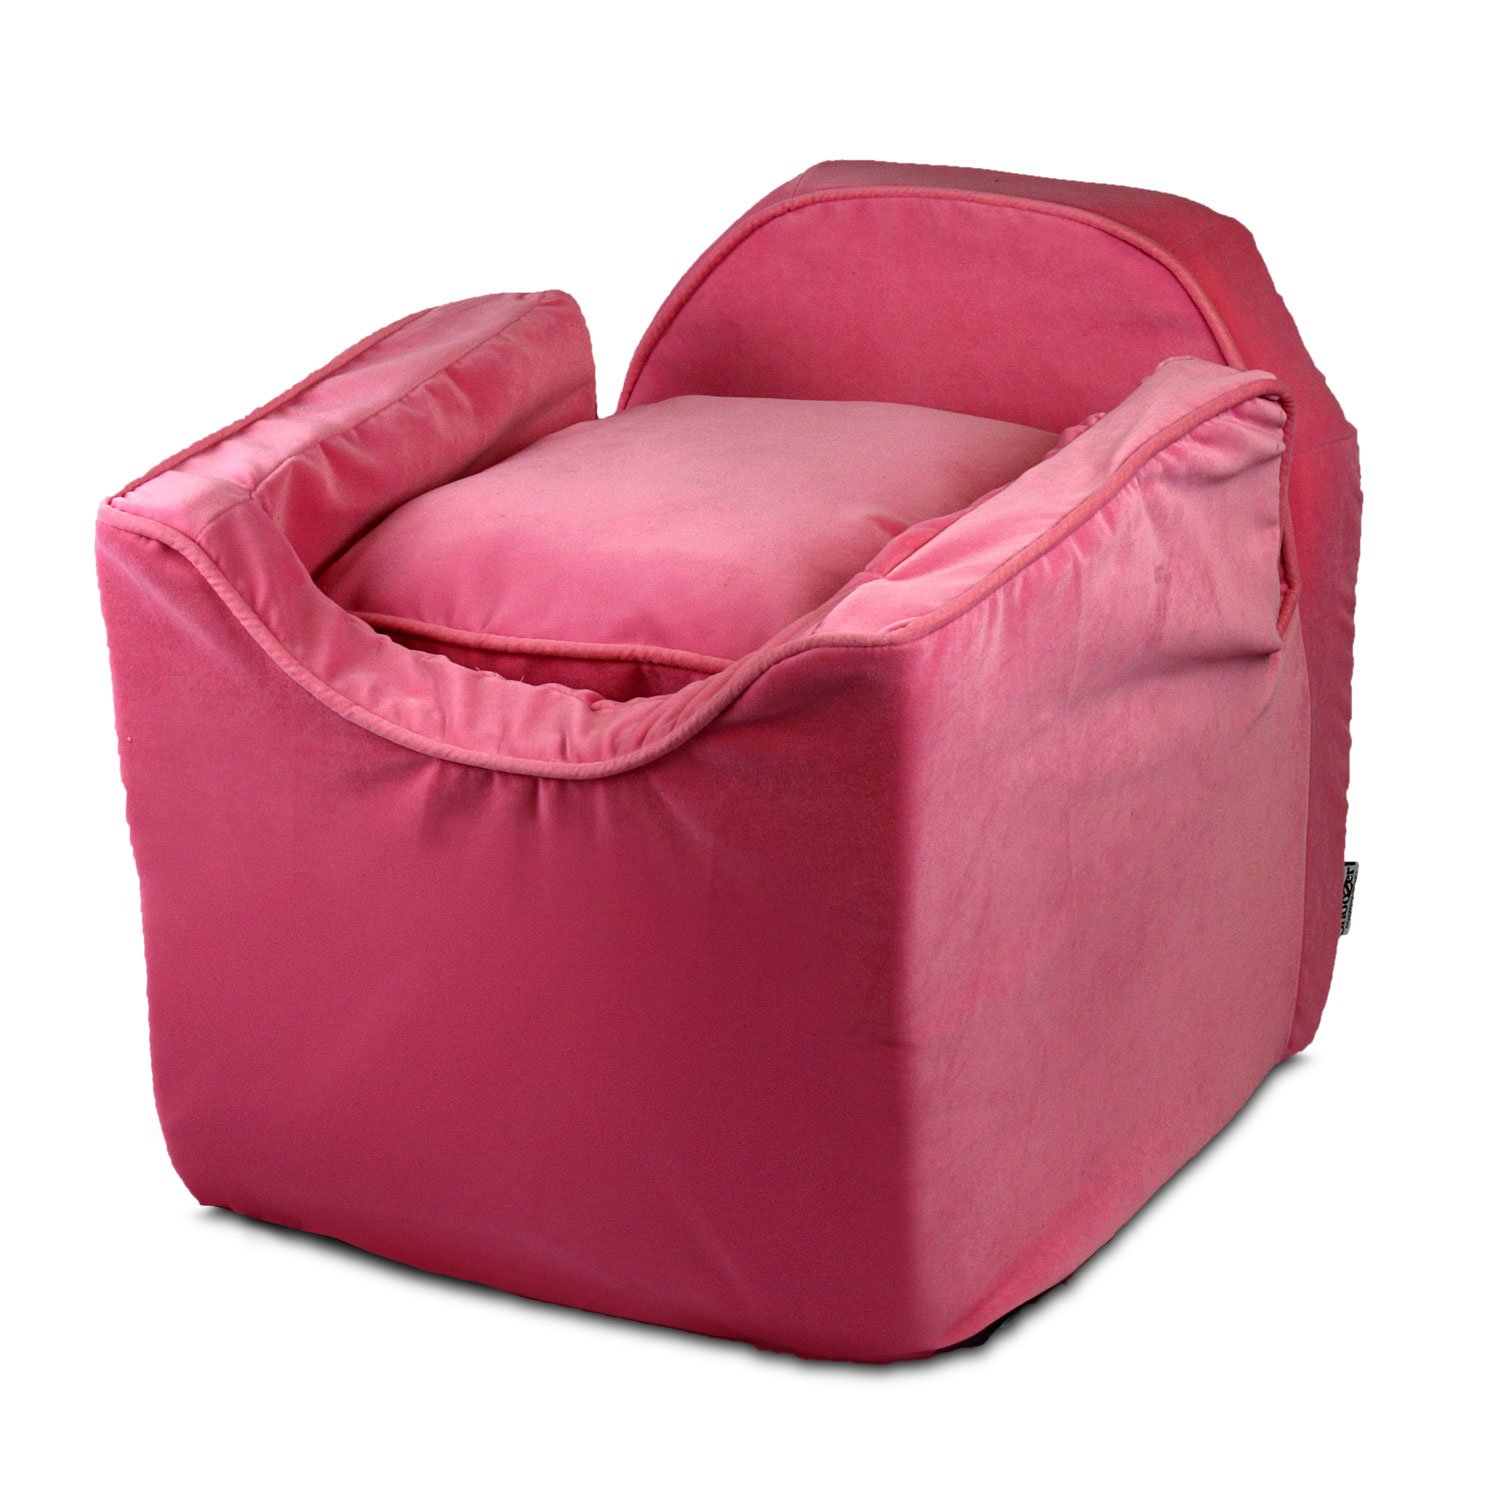 Snoozer Luxury I Lookout Pet Car Seat, Small, Pink with Pink